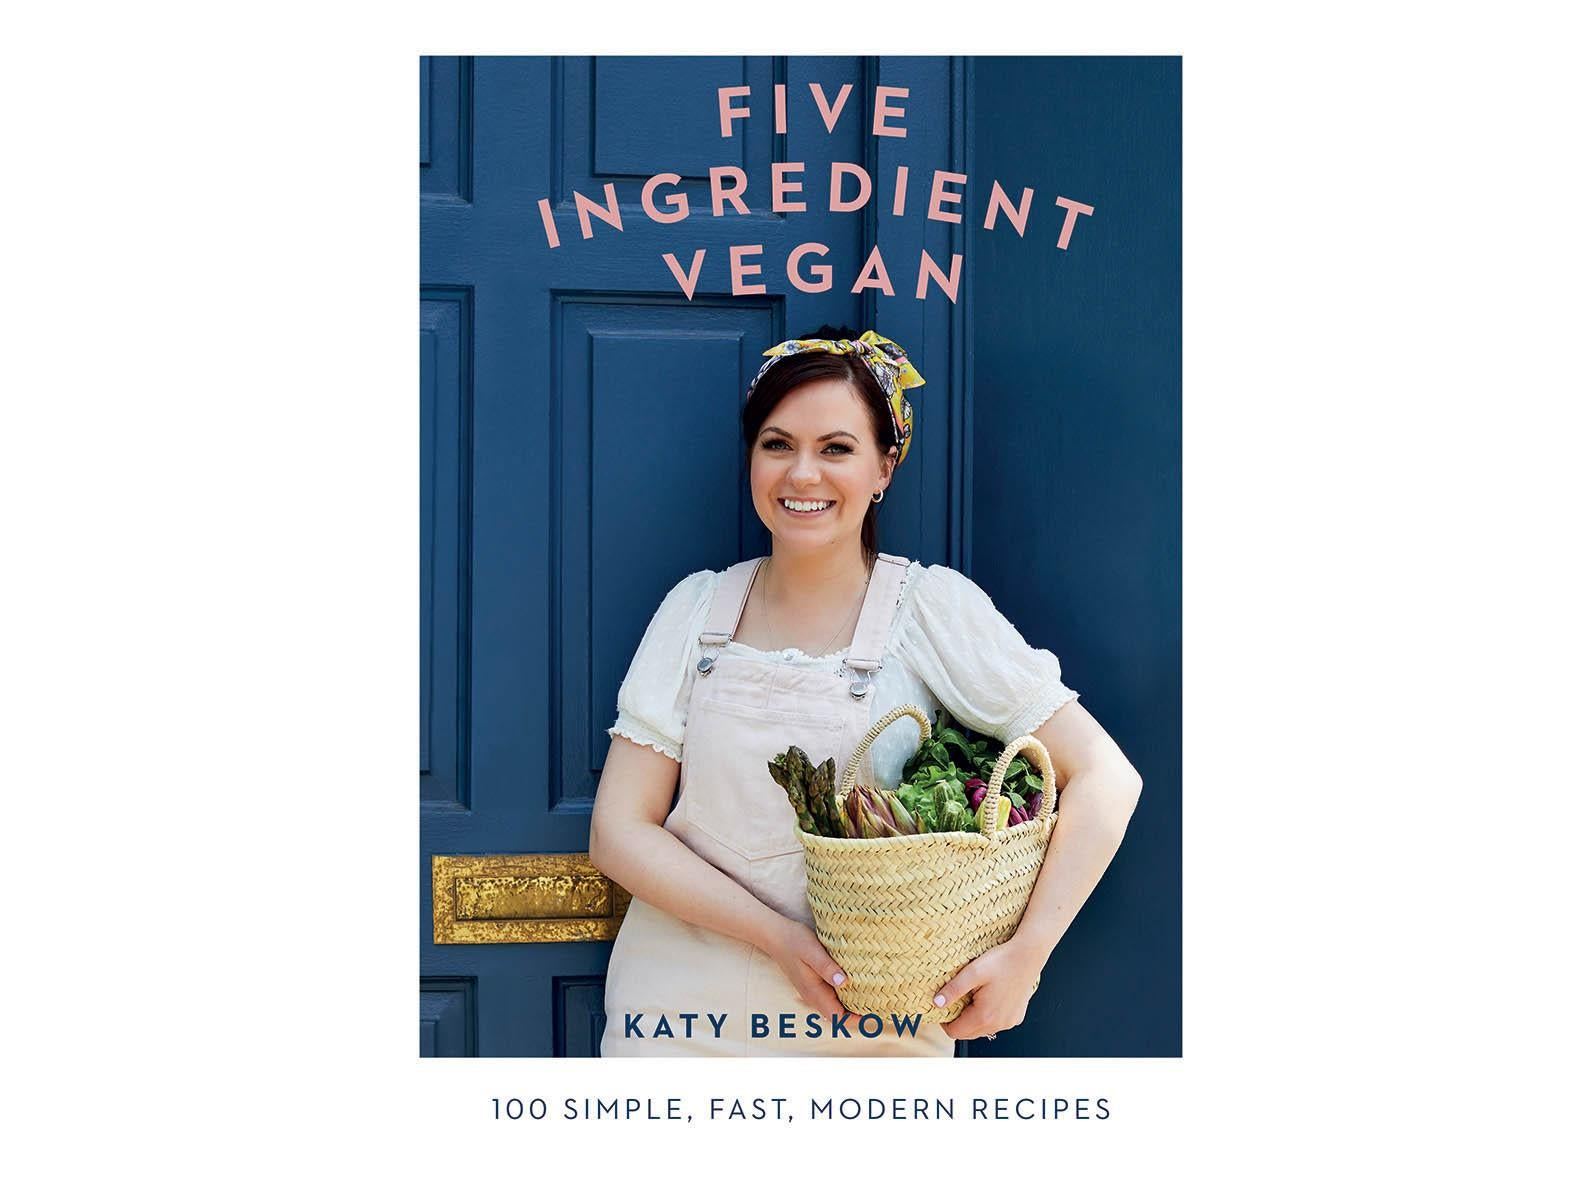 '5 Ingredient Vegan' by Katy Beskow. Published by Quadrille: £12.08, Amazon